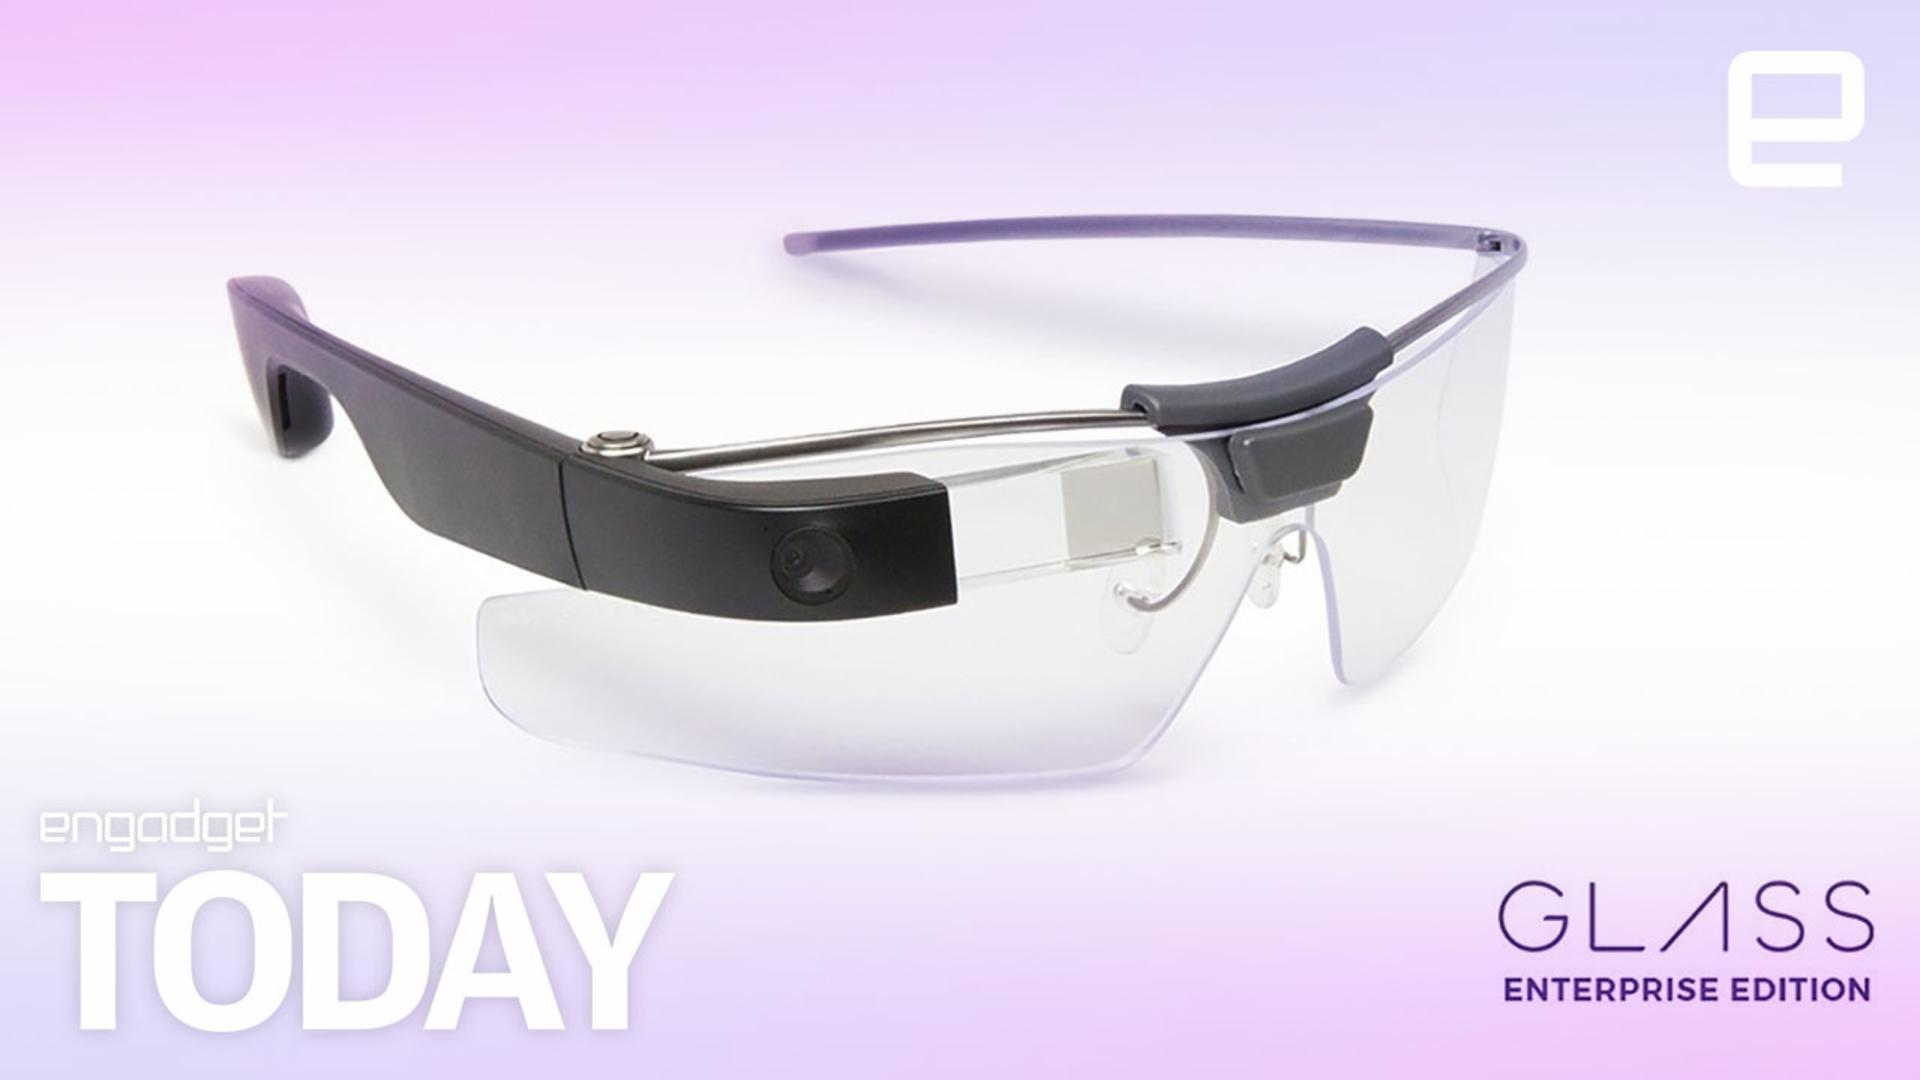 Google Glass is officially back with a clearer vision